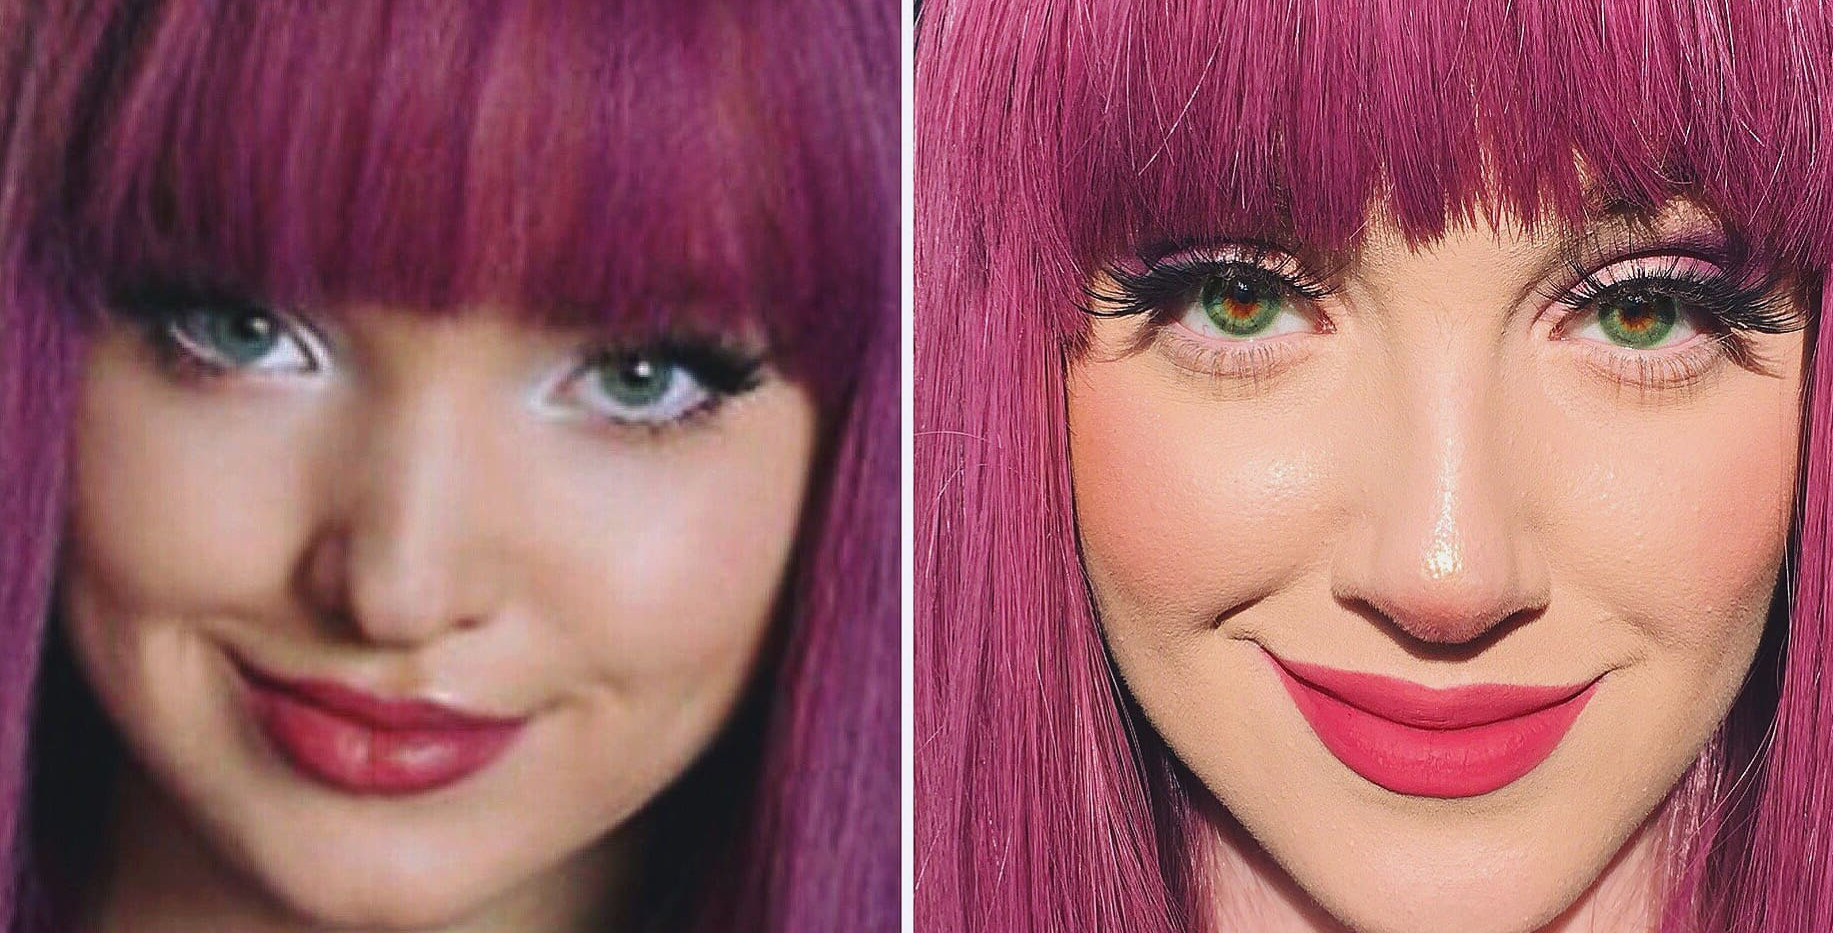 DOVE CAMERON TRANSFORMATION